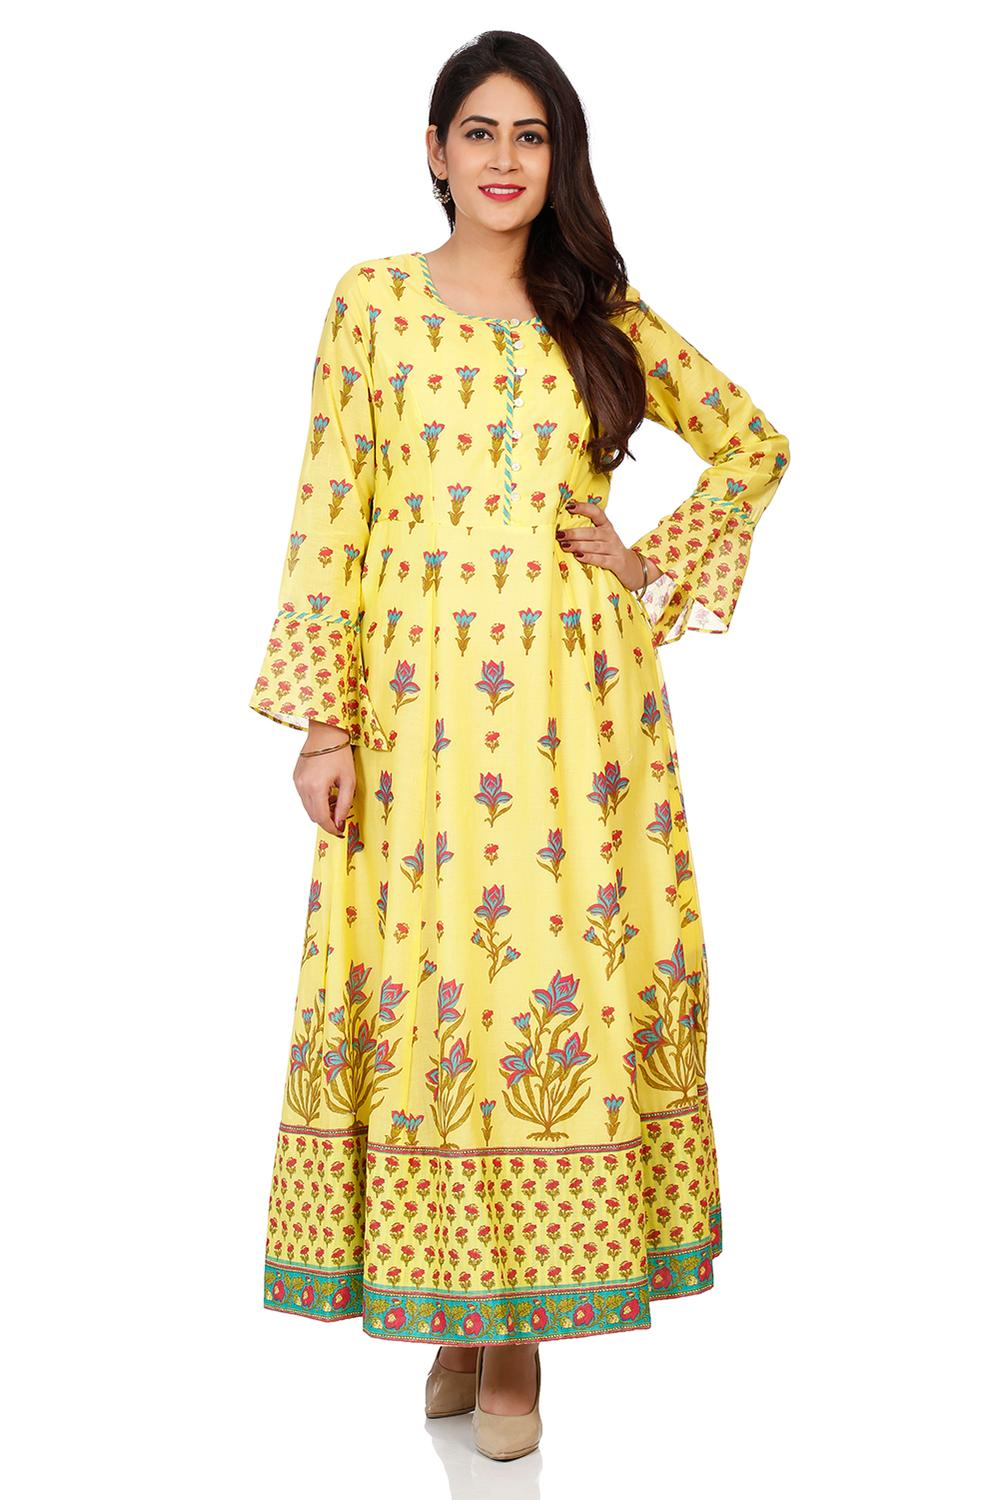 Lemon Yellow Cotton Kalidar Kurta - CAFEPIN14506AW